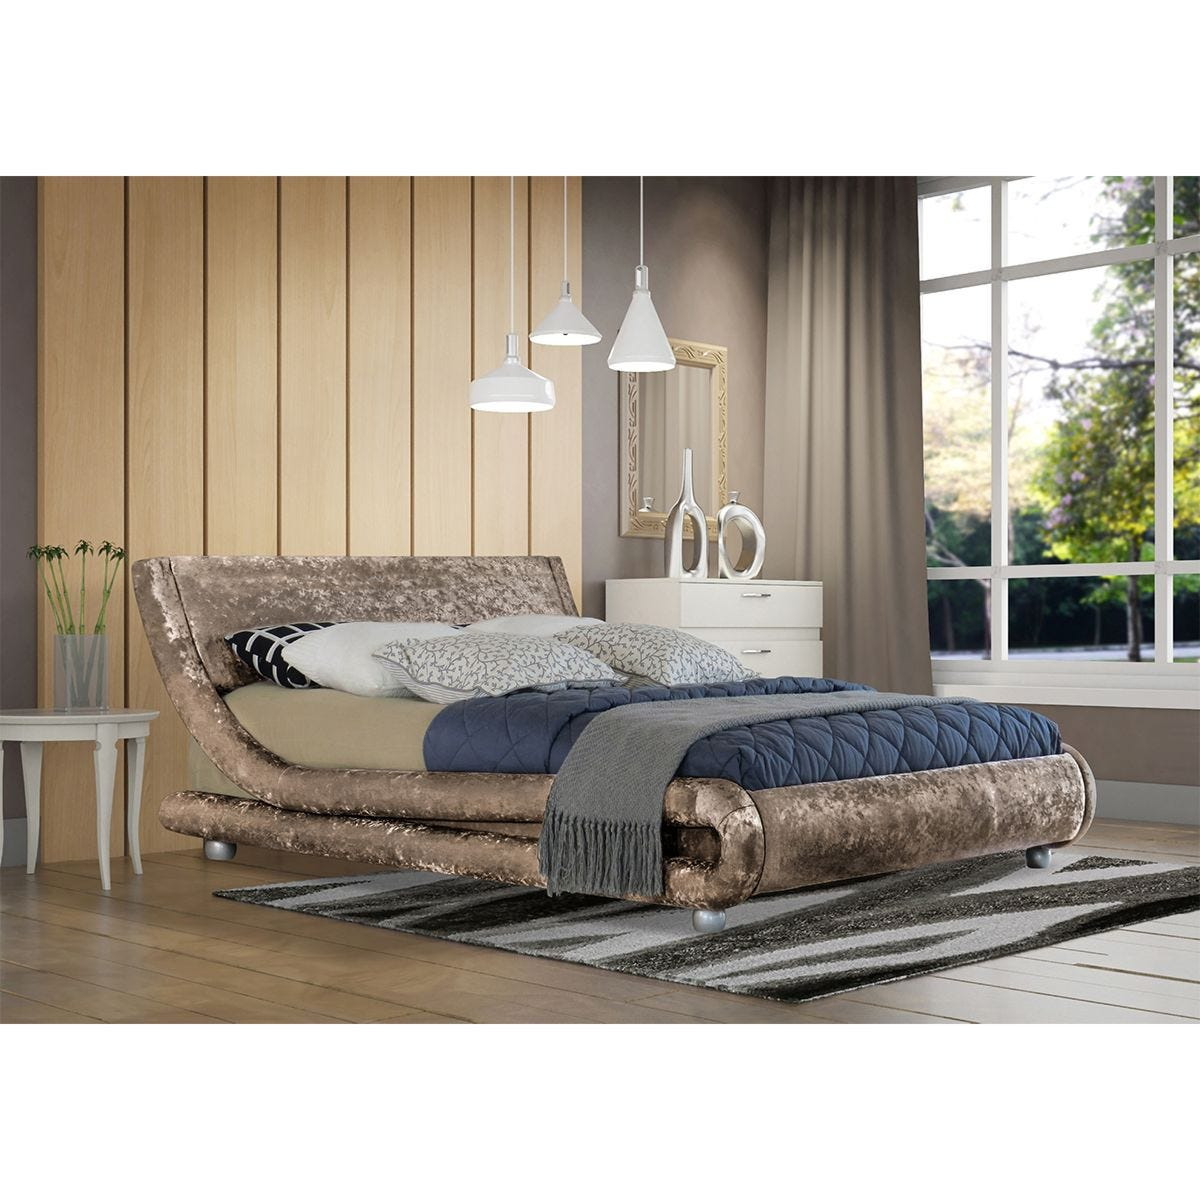 Grayson Bed Frame - Truffle